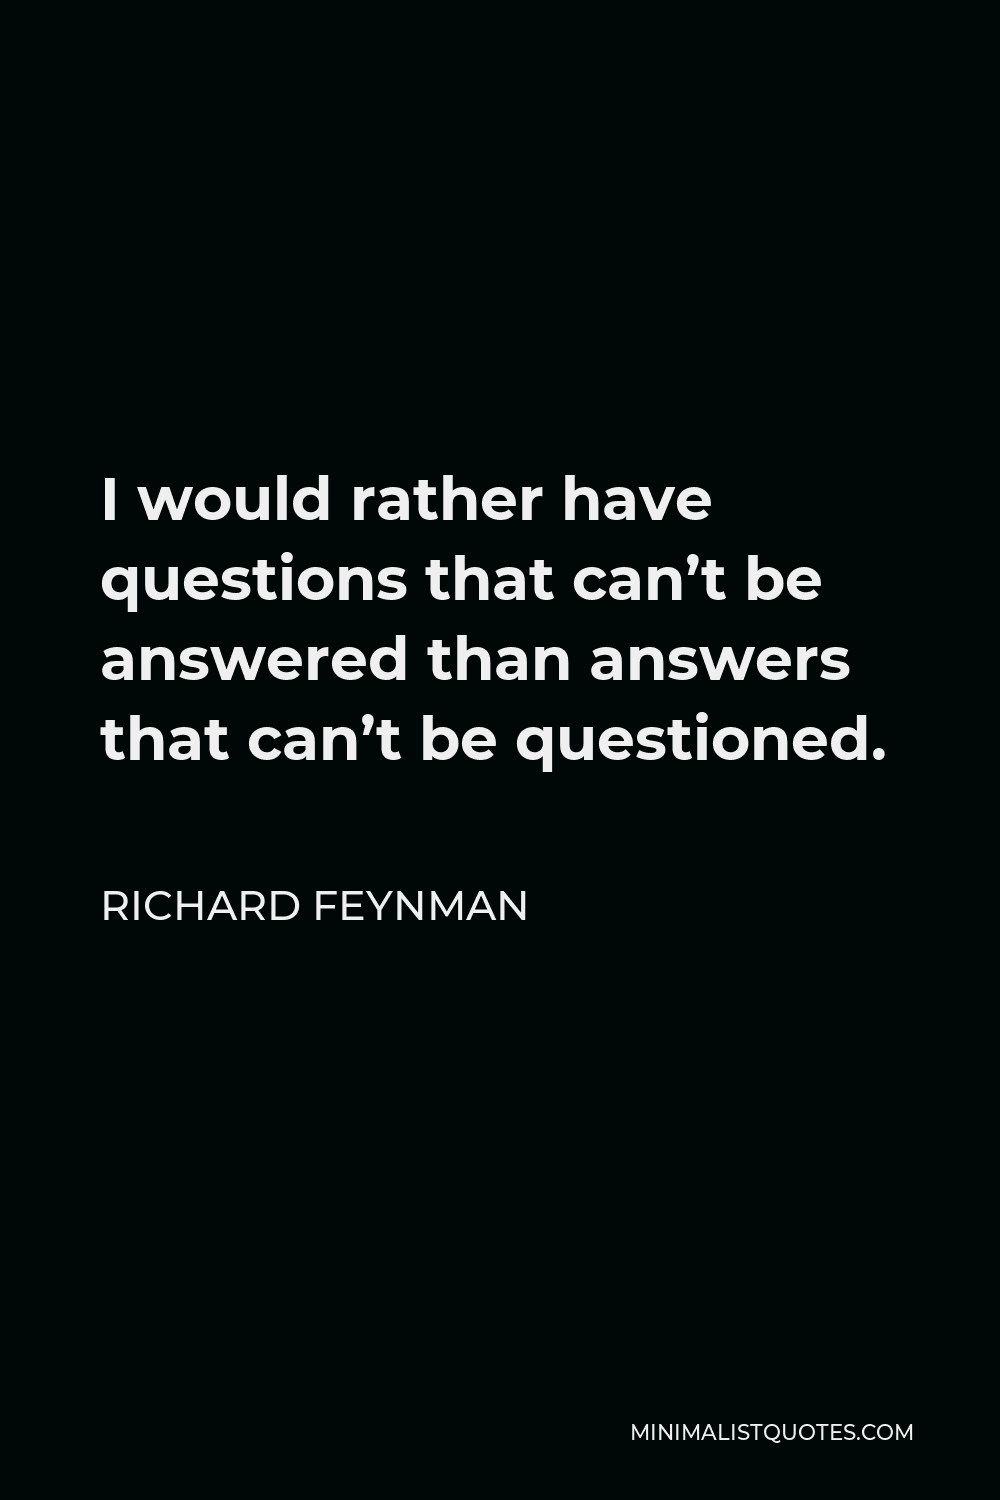 Richard Feynman Quote - I would rather have questions that can't be answered than answers that can't be questioned.